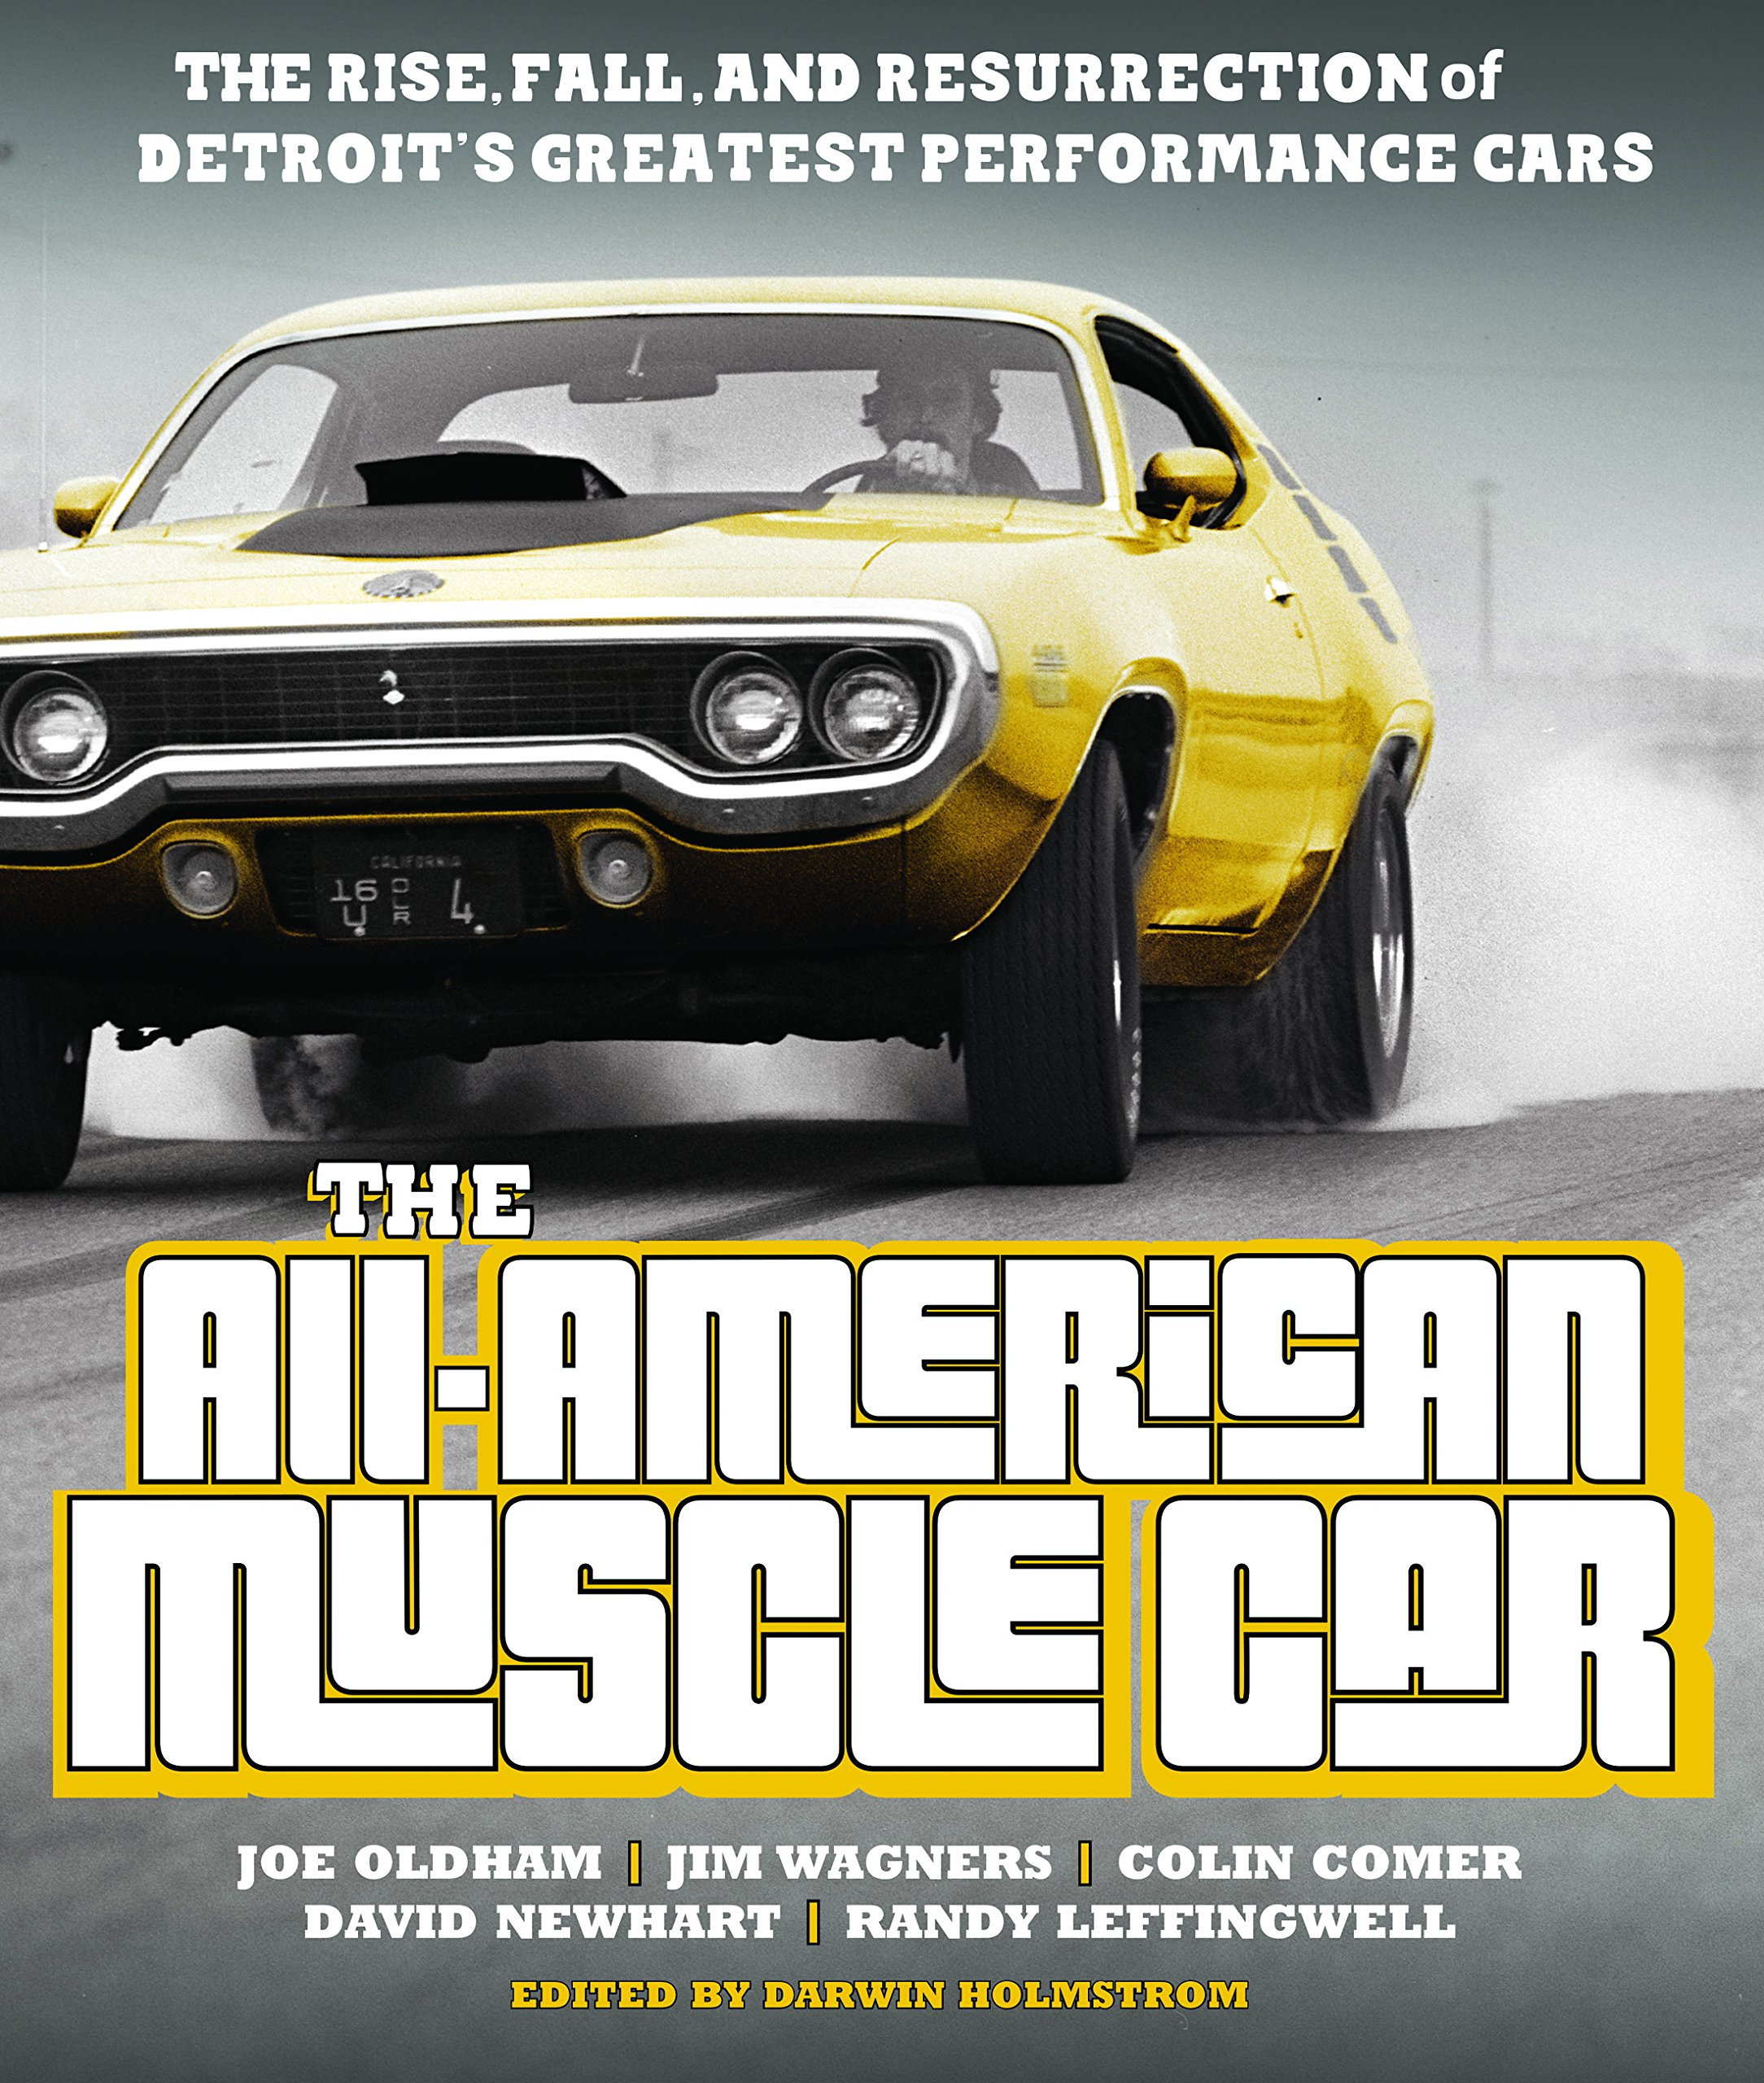 The All-American Muscle Car The Rise, Fall And